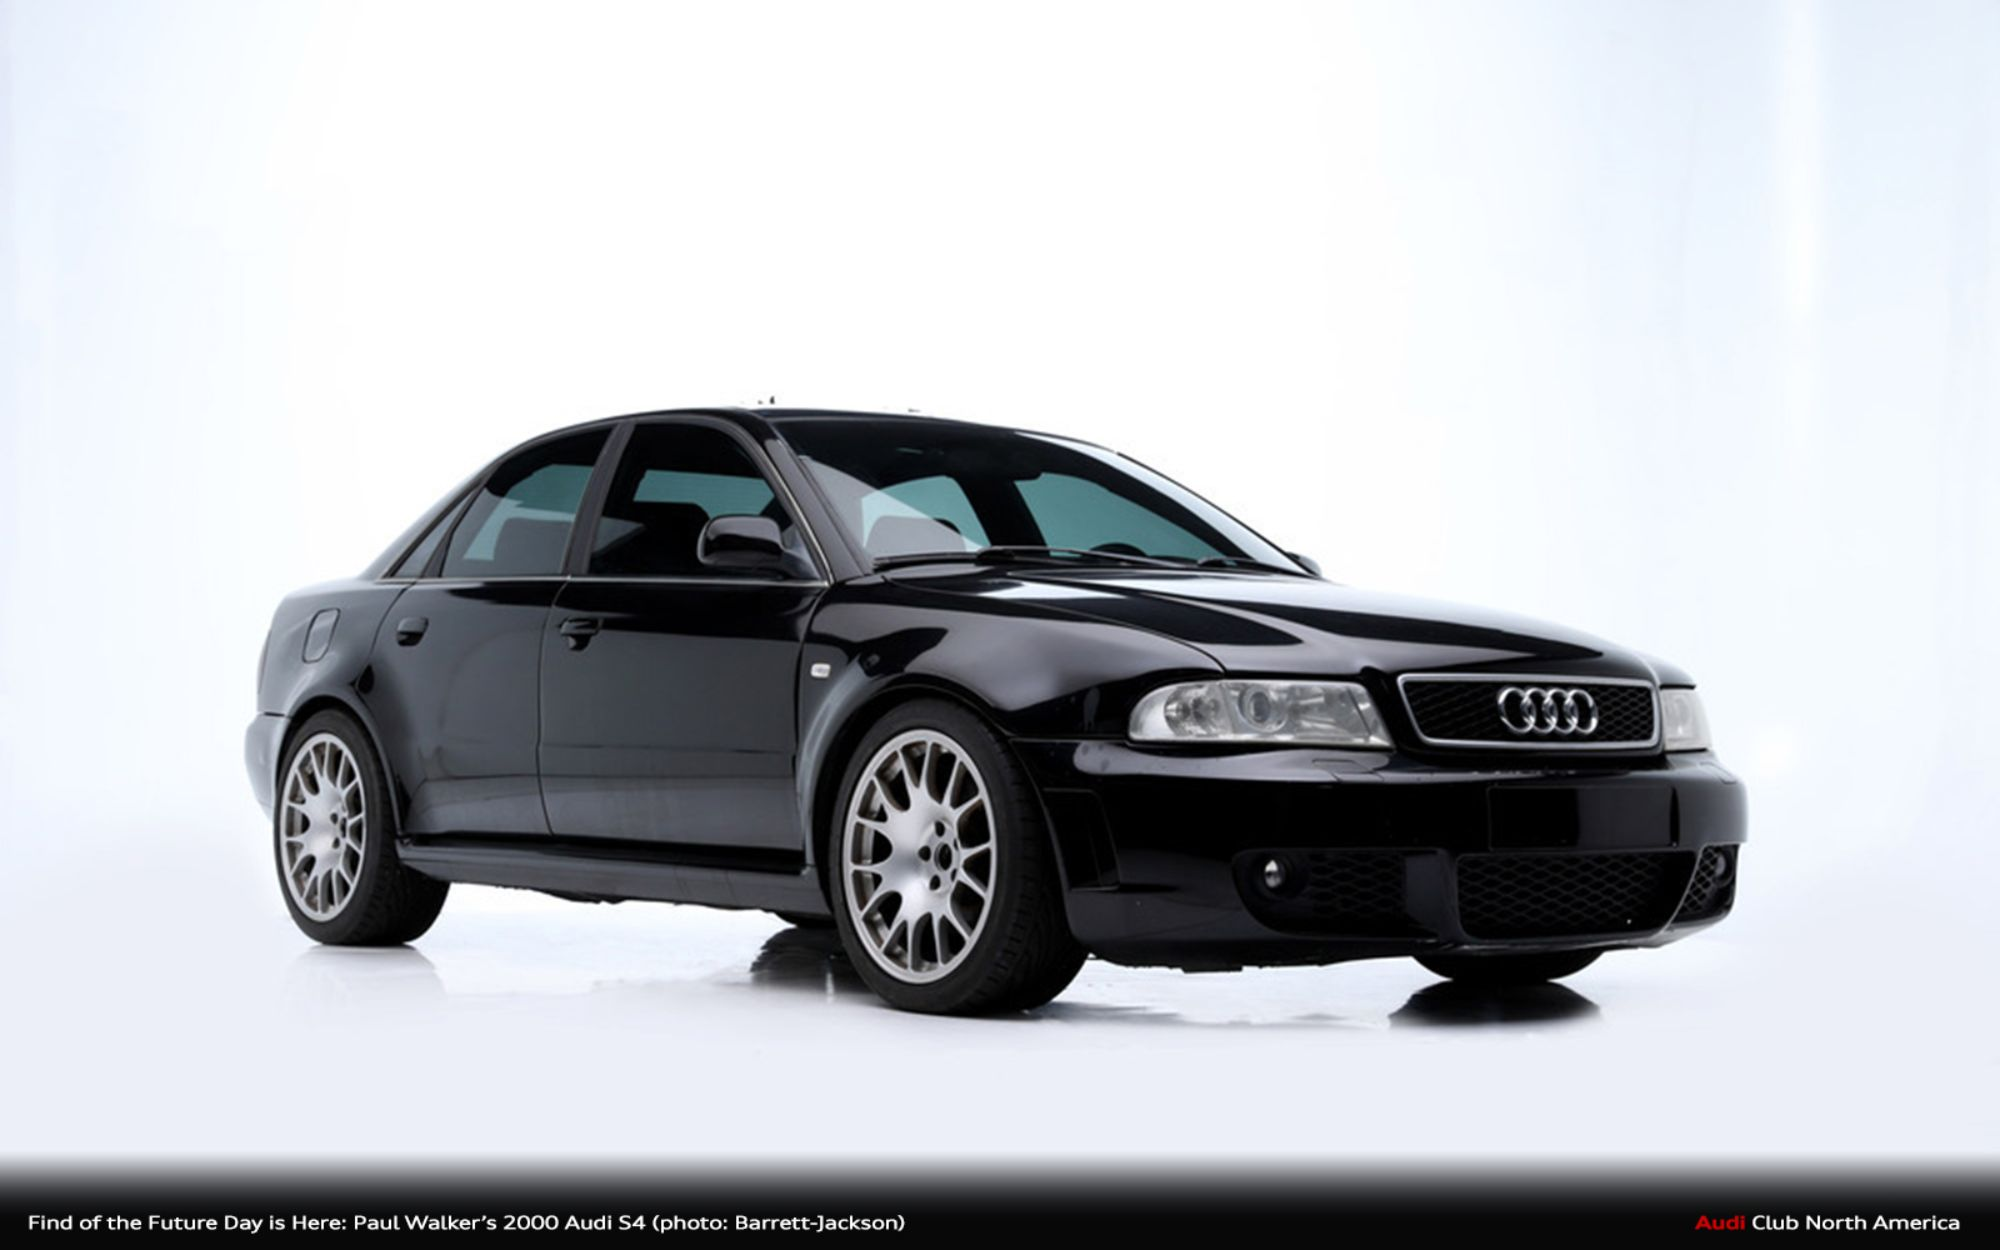 AZ Euros Talks About Paul Walker's B5 S4